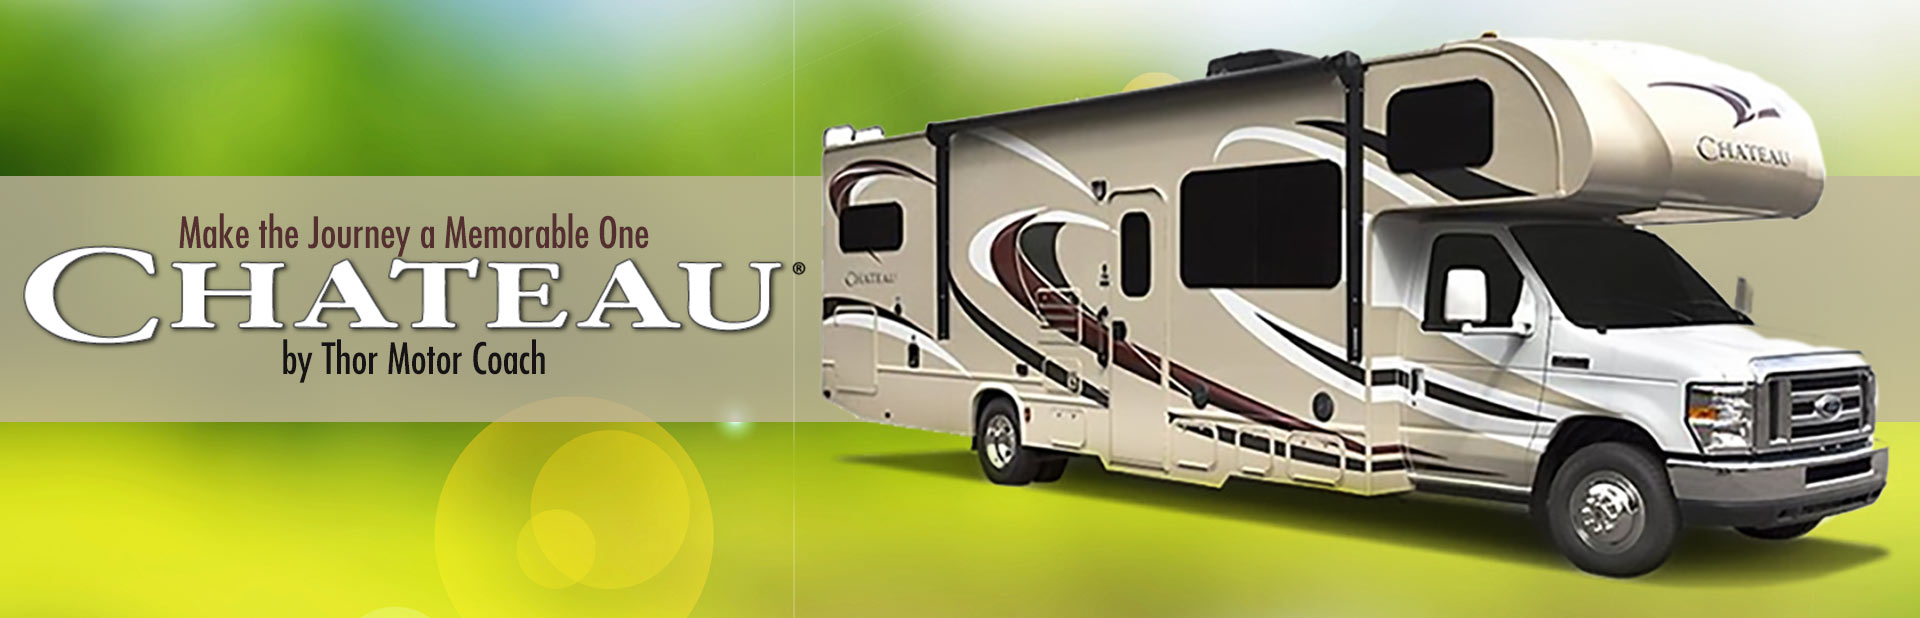 Thor Motor Coach RVs: Click here to view the models